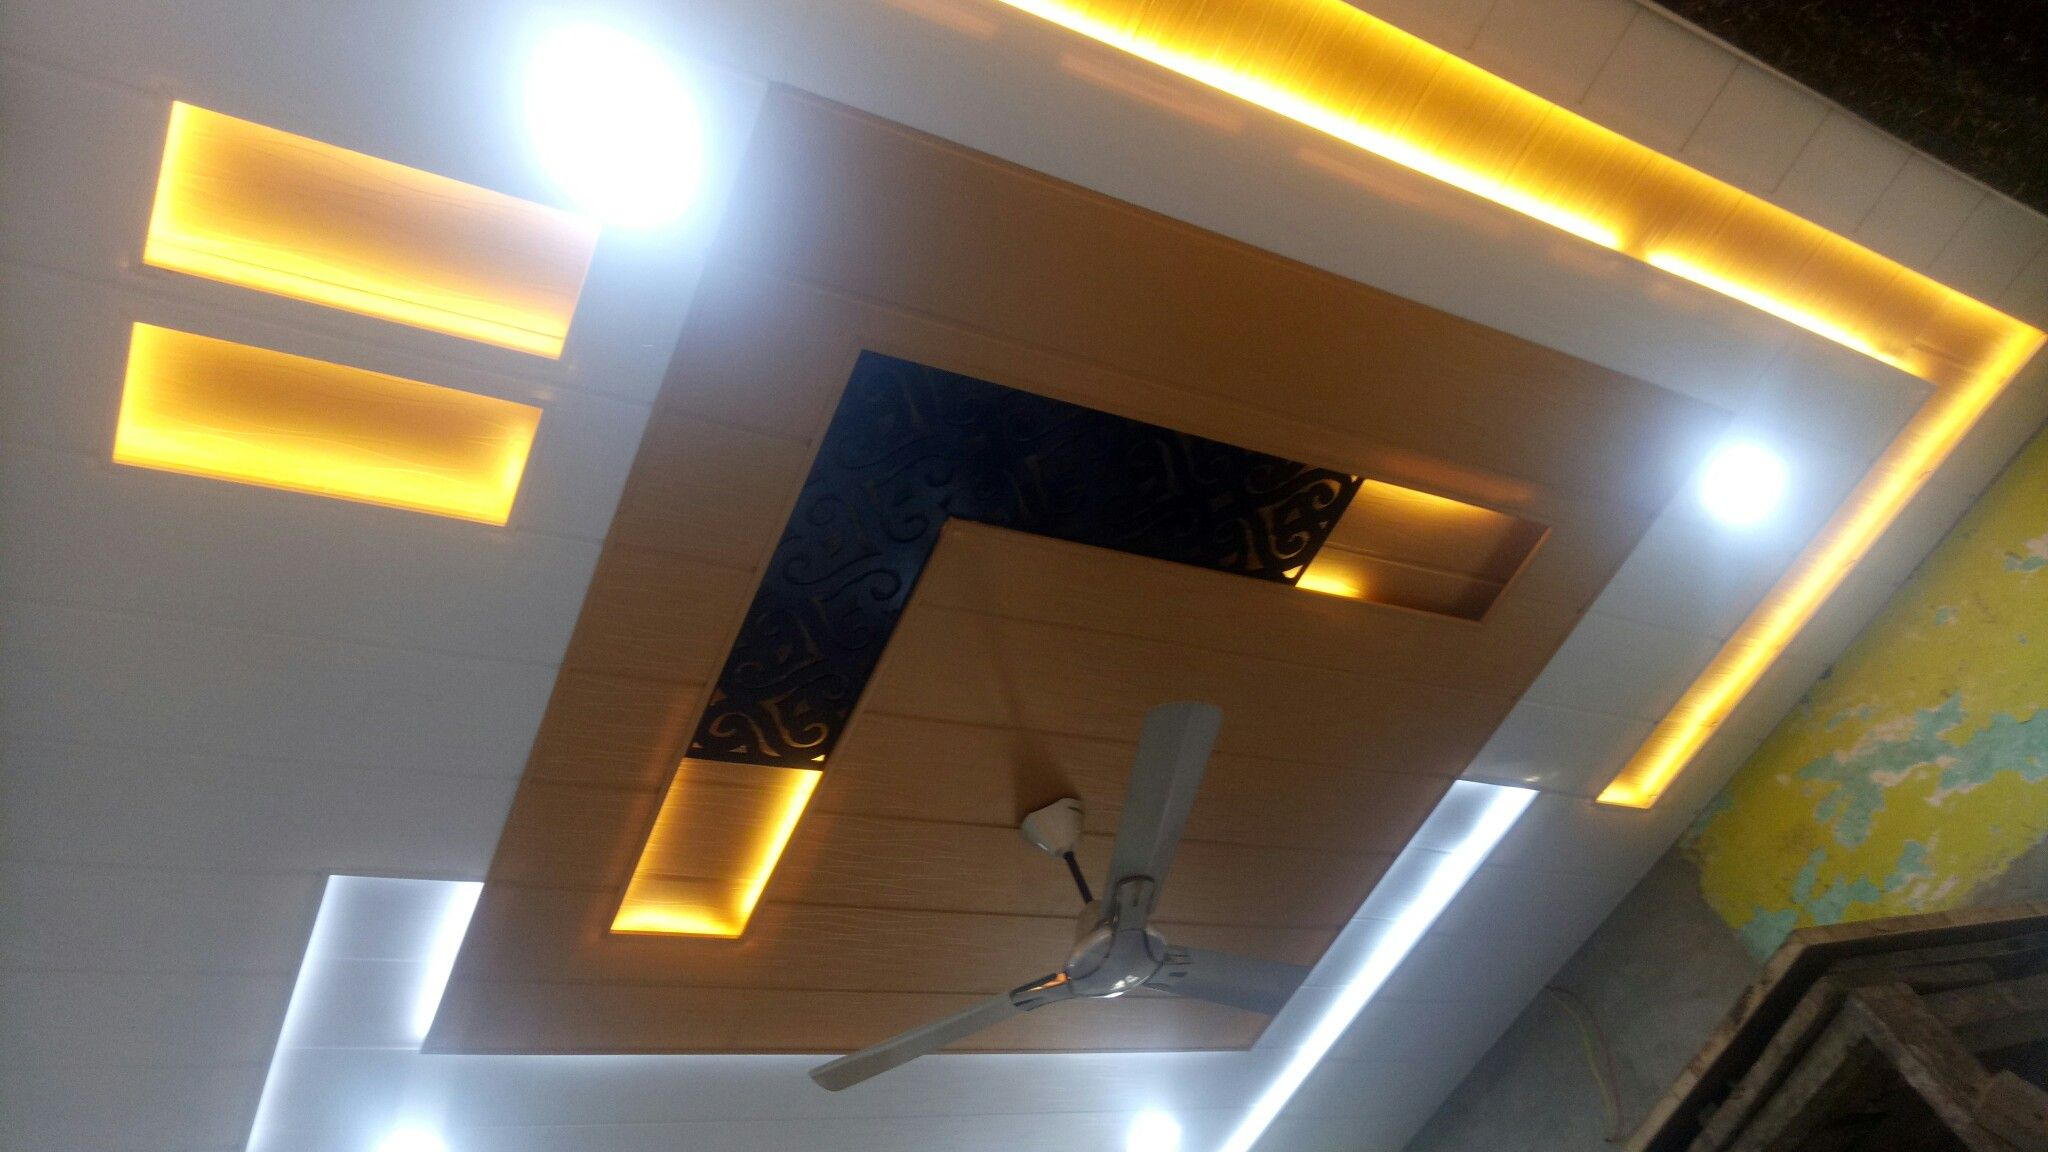 Pin By Manikanta On Ceiling Design Ceiling Design Living Room House Ceiling Design Ceiling Design Bedroom